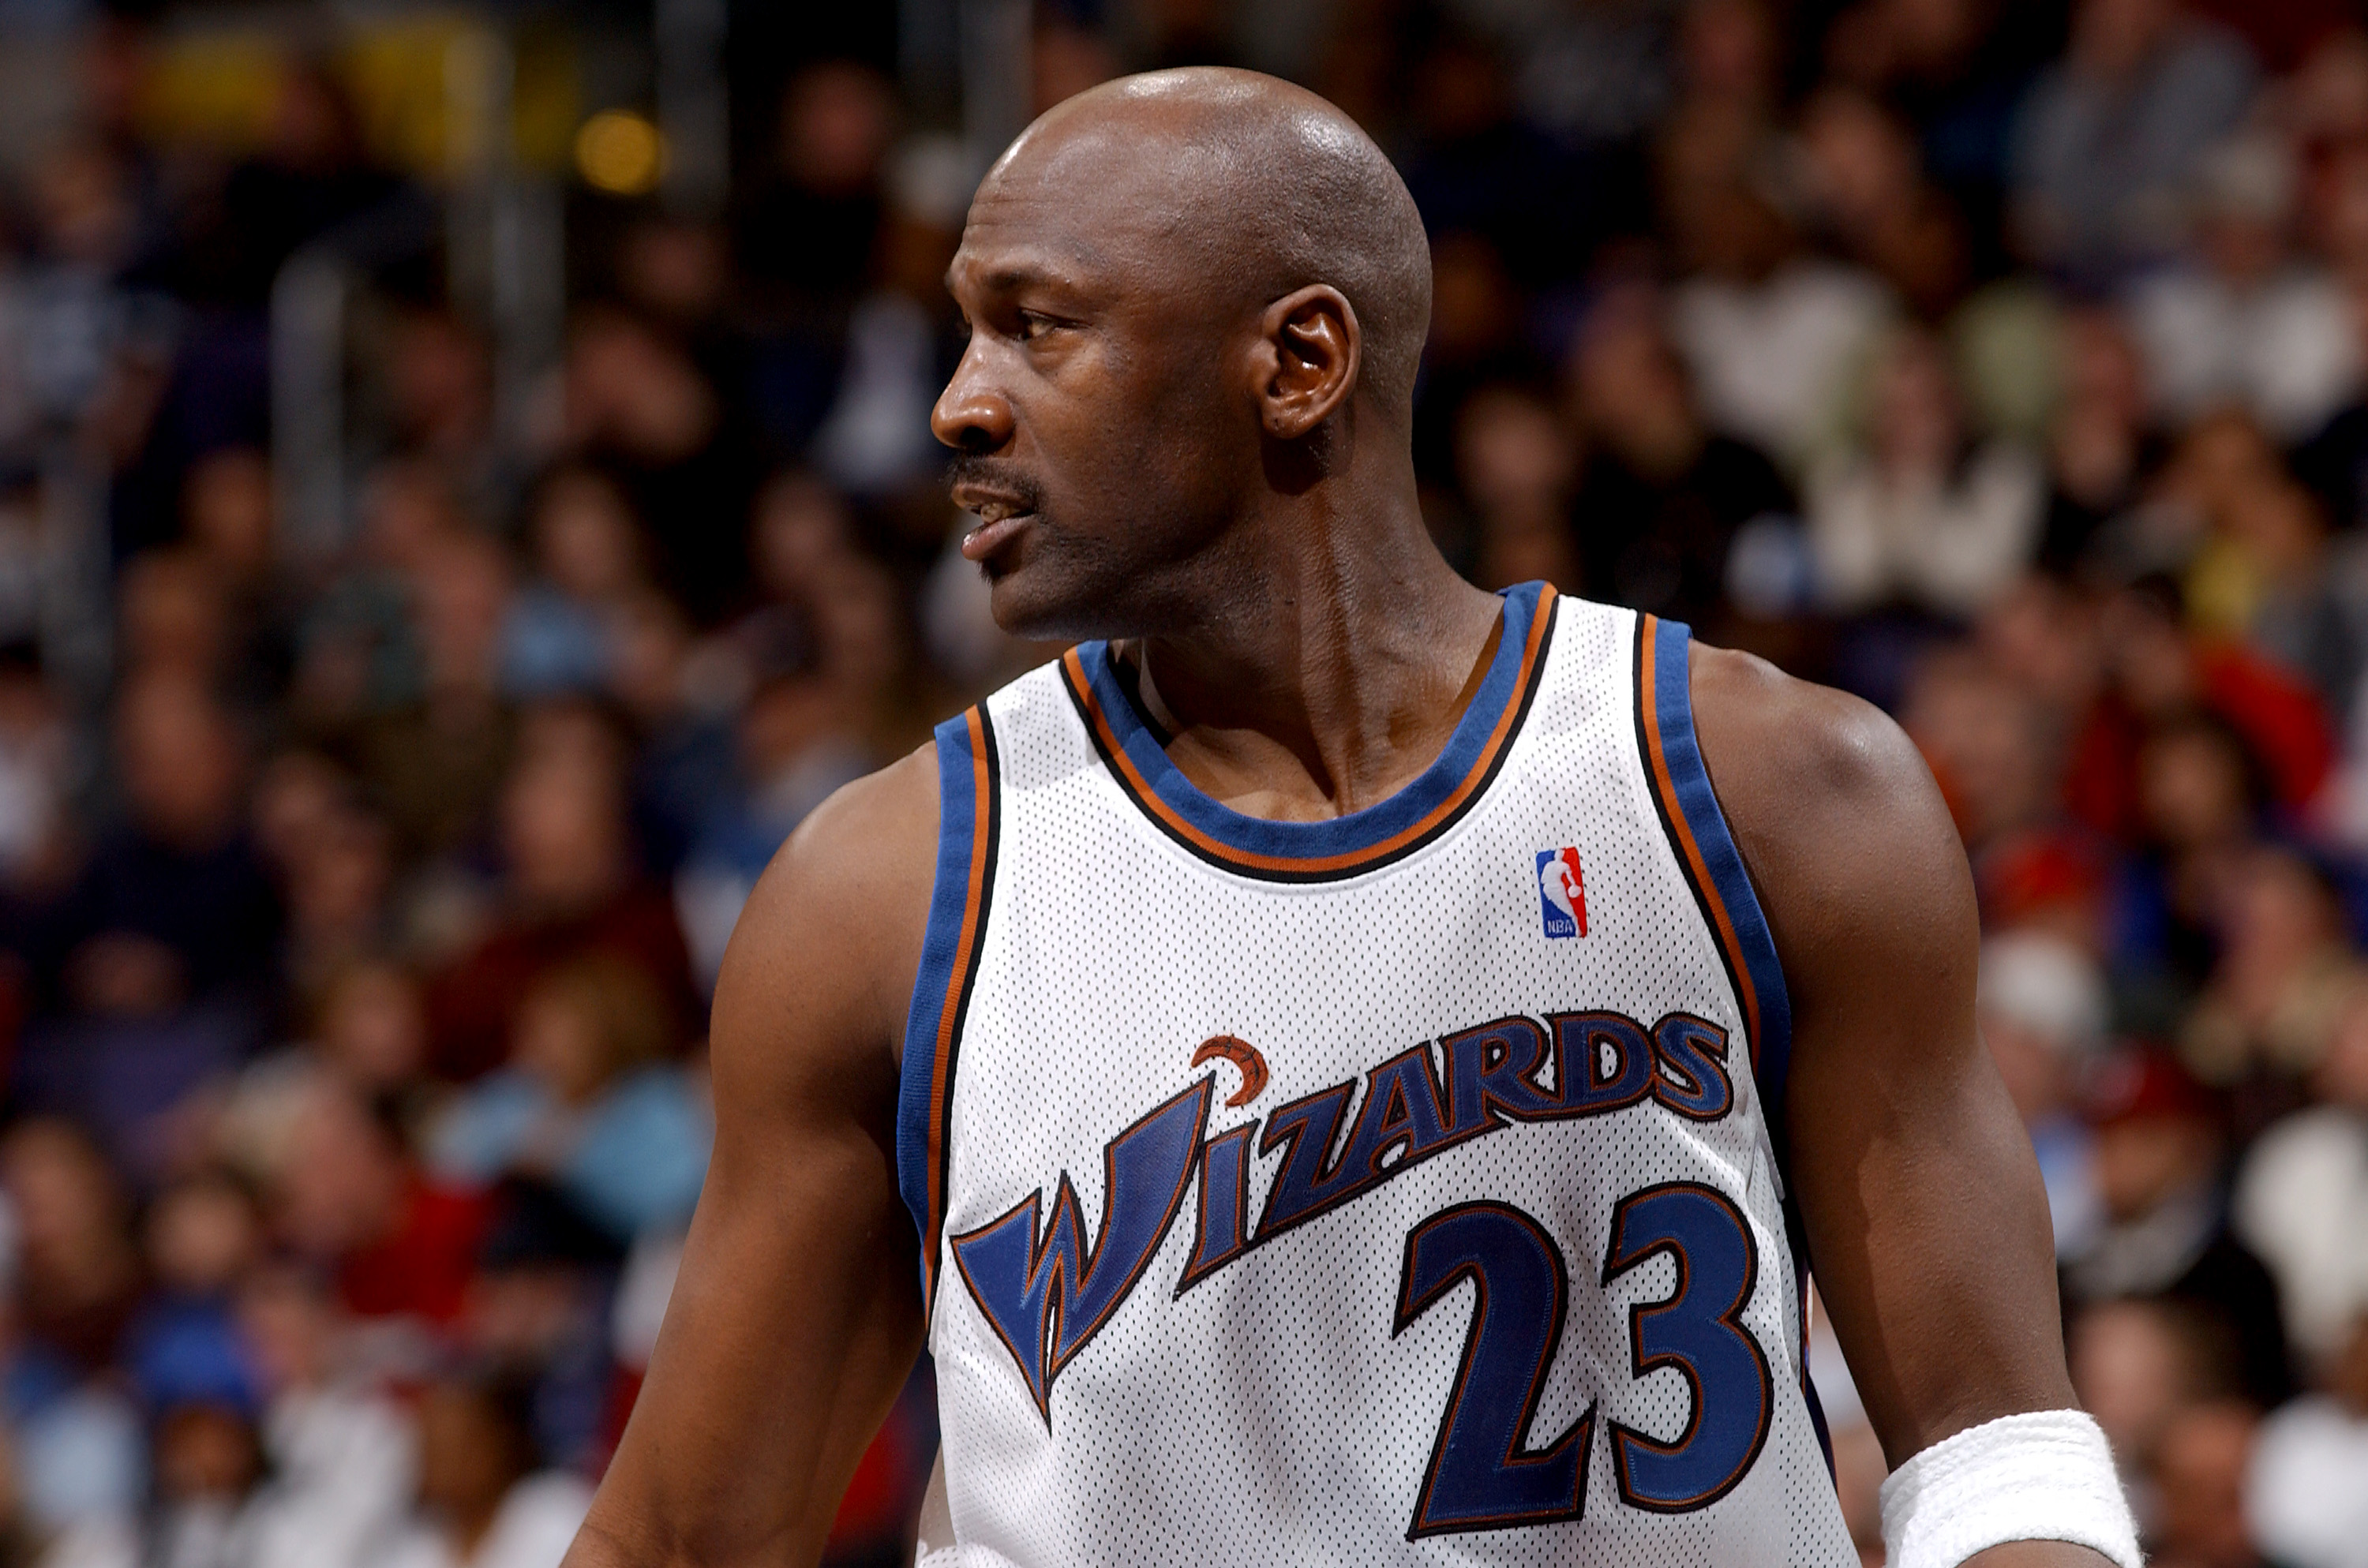 Michael Jordan needed stitches after a bizarre brush with death.